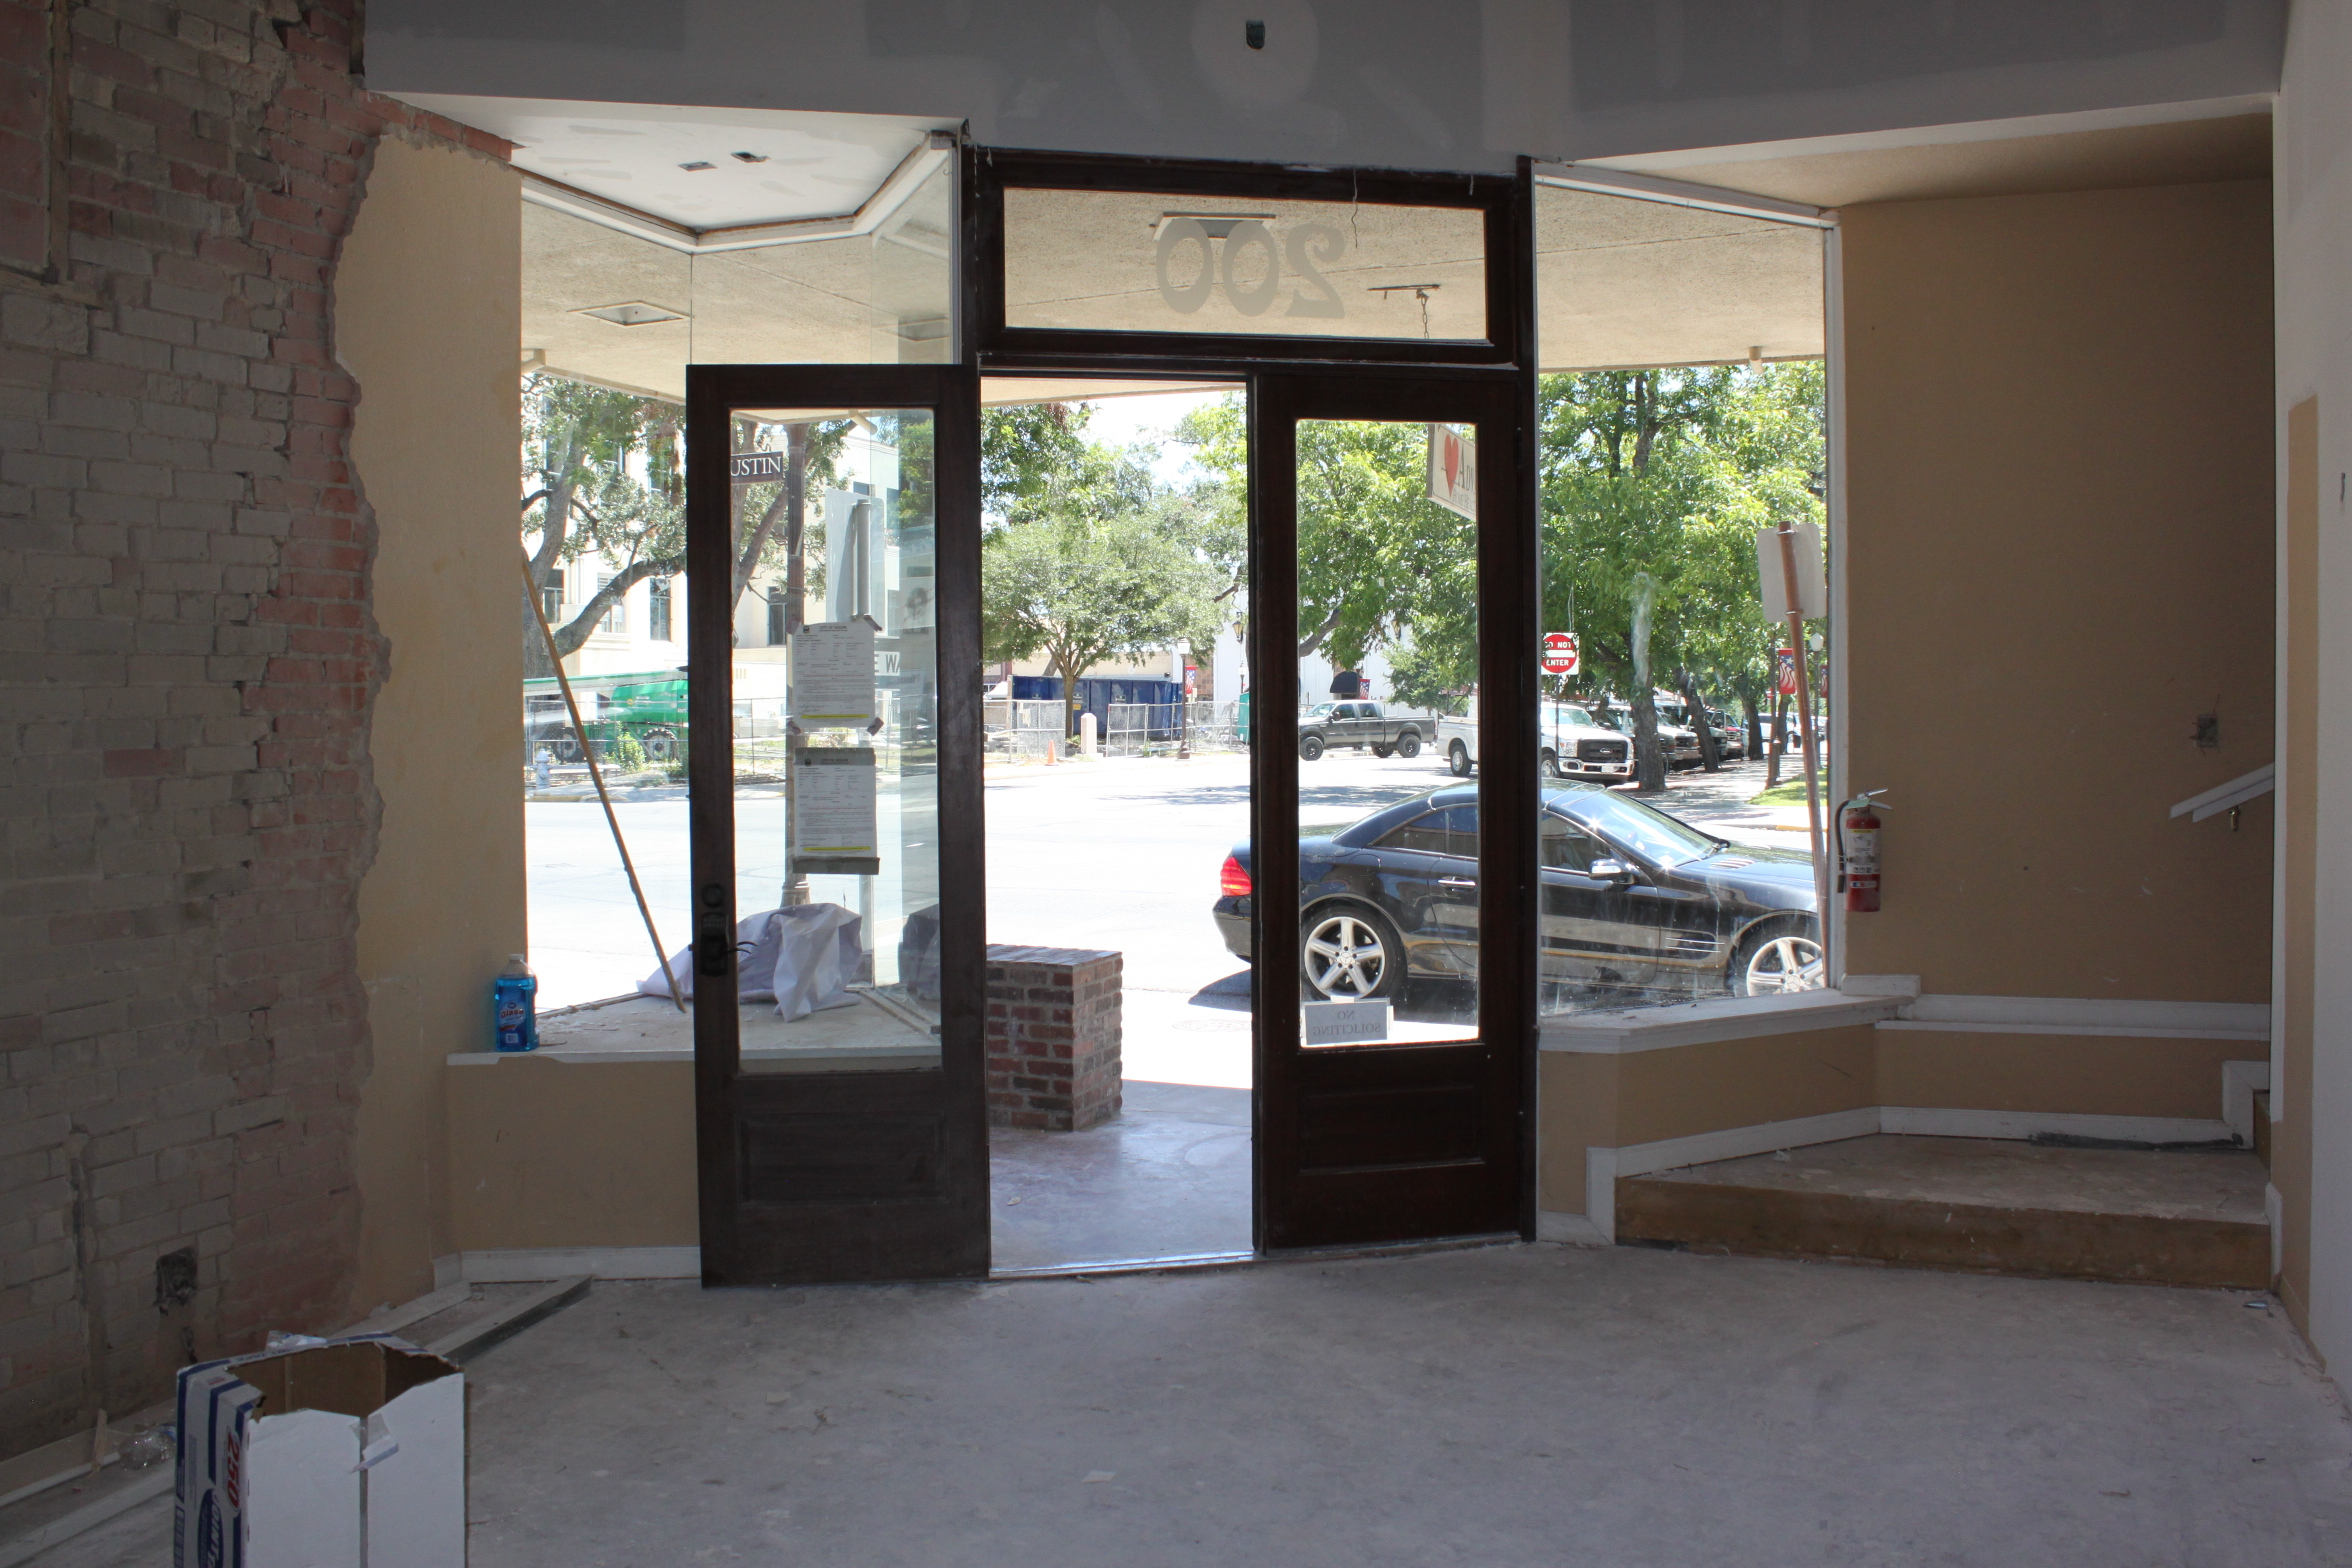 1568 #4F6C7C KW Seguin Purchases Downtown Seguin Building Meticulously Restores In  picture/photo Exterior Doors Austin 40492352